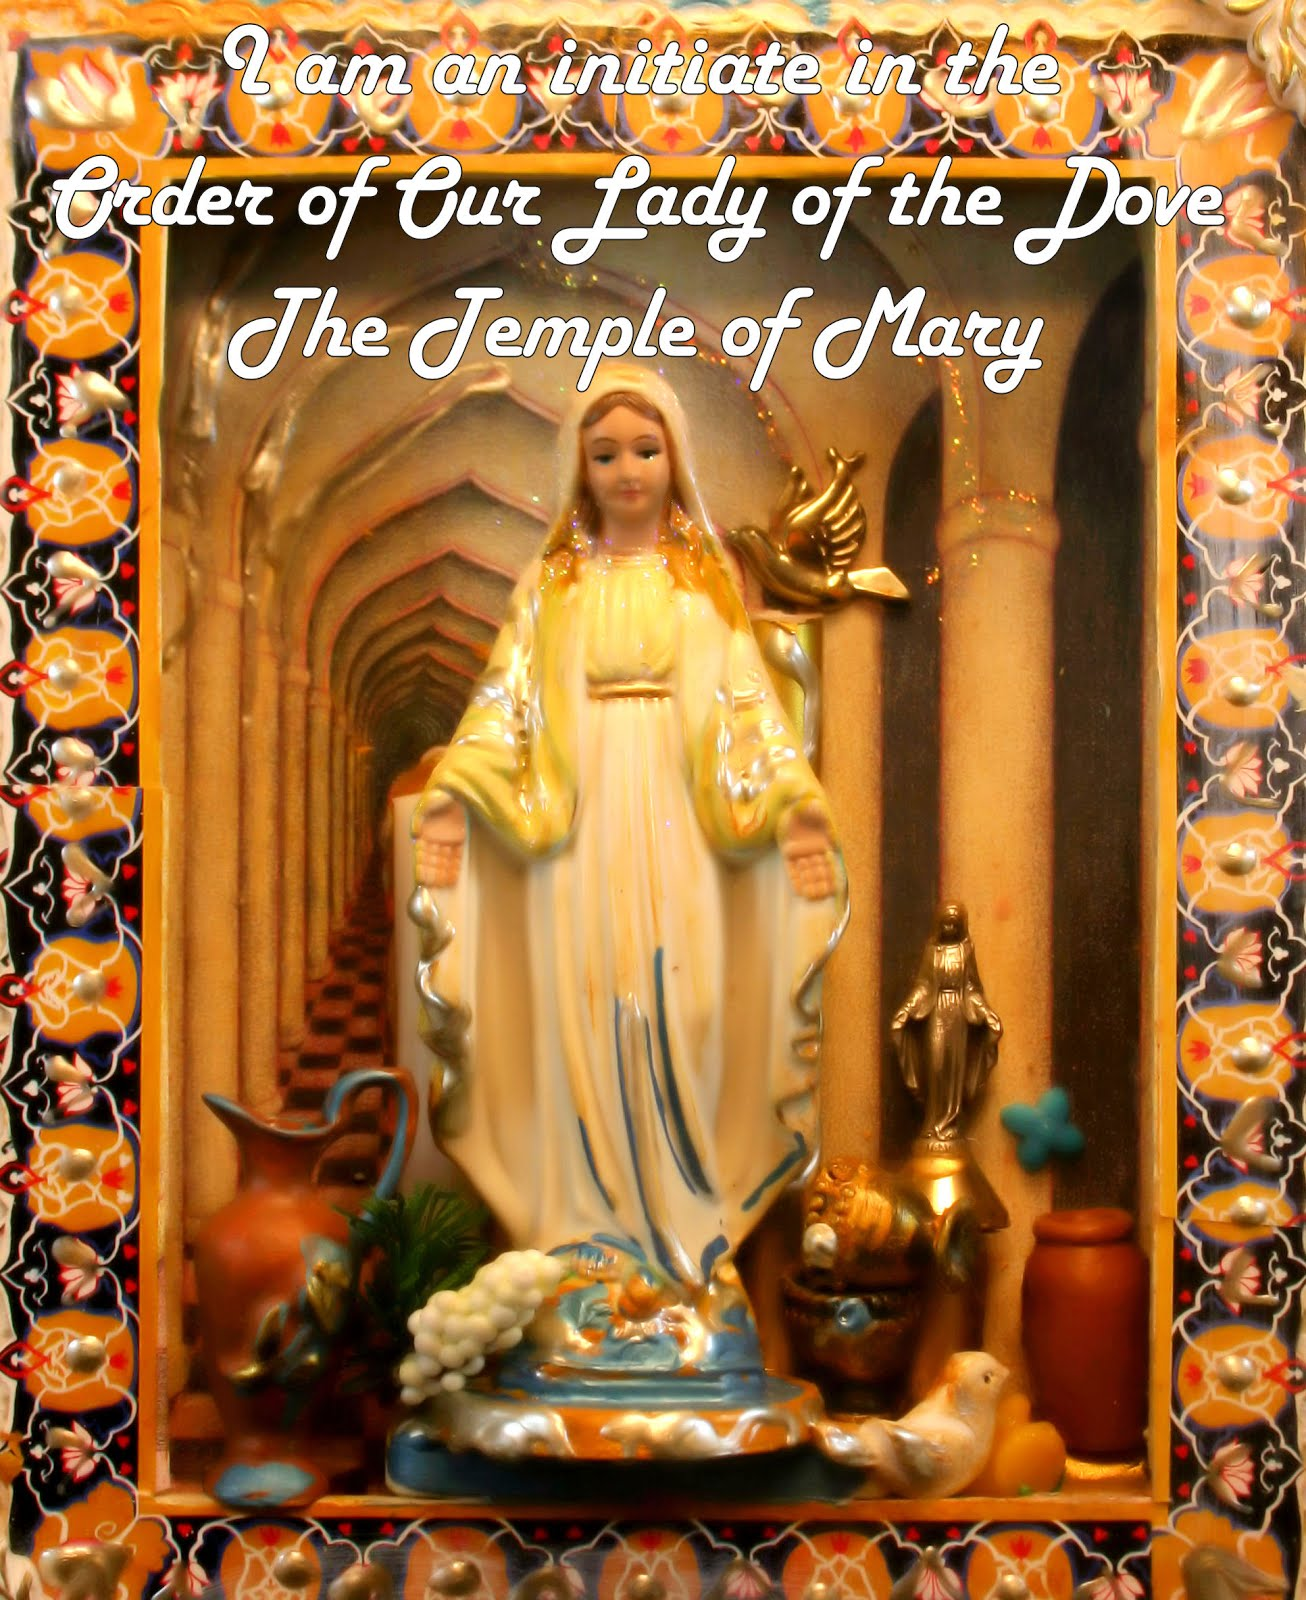 Initiate in the Order of Our Lady of the Dove